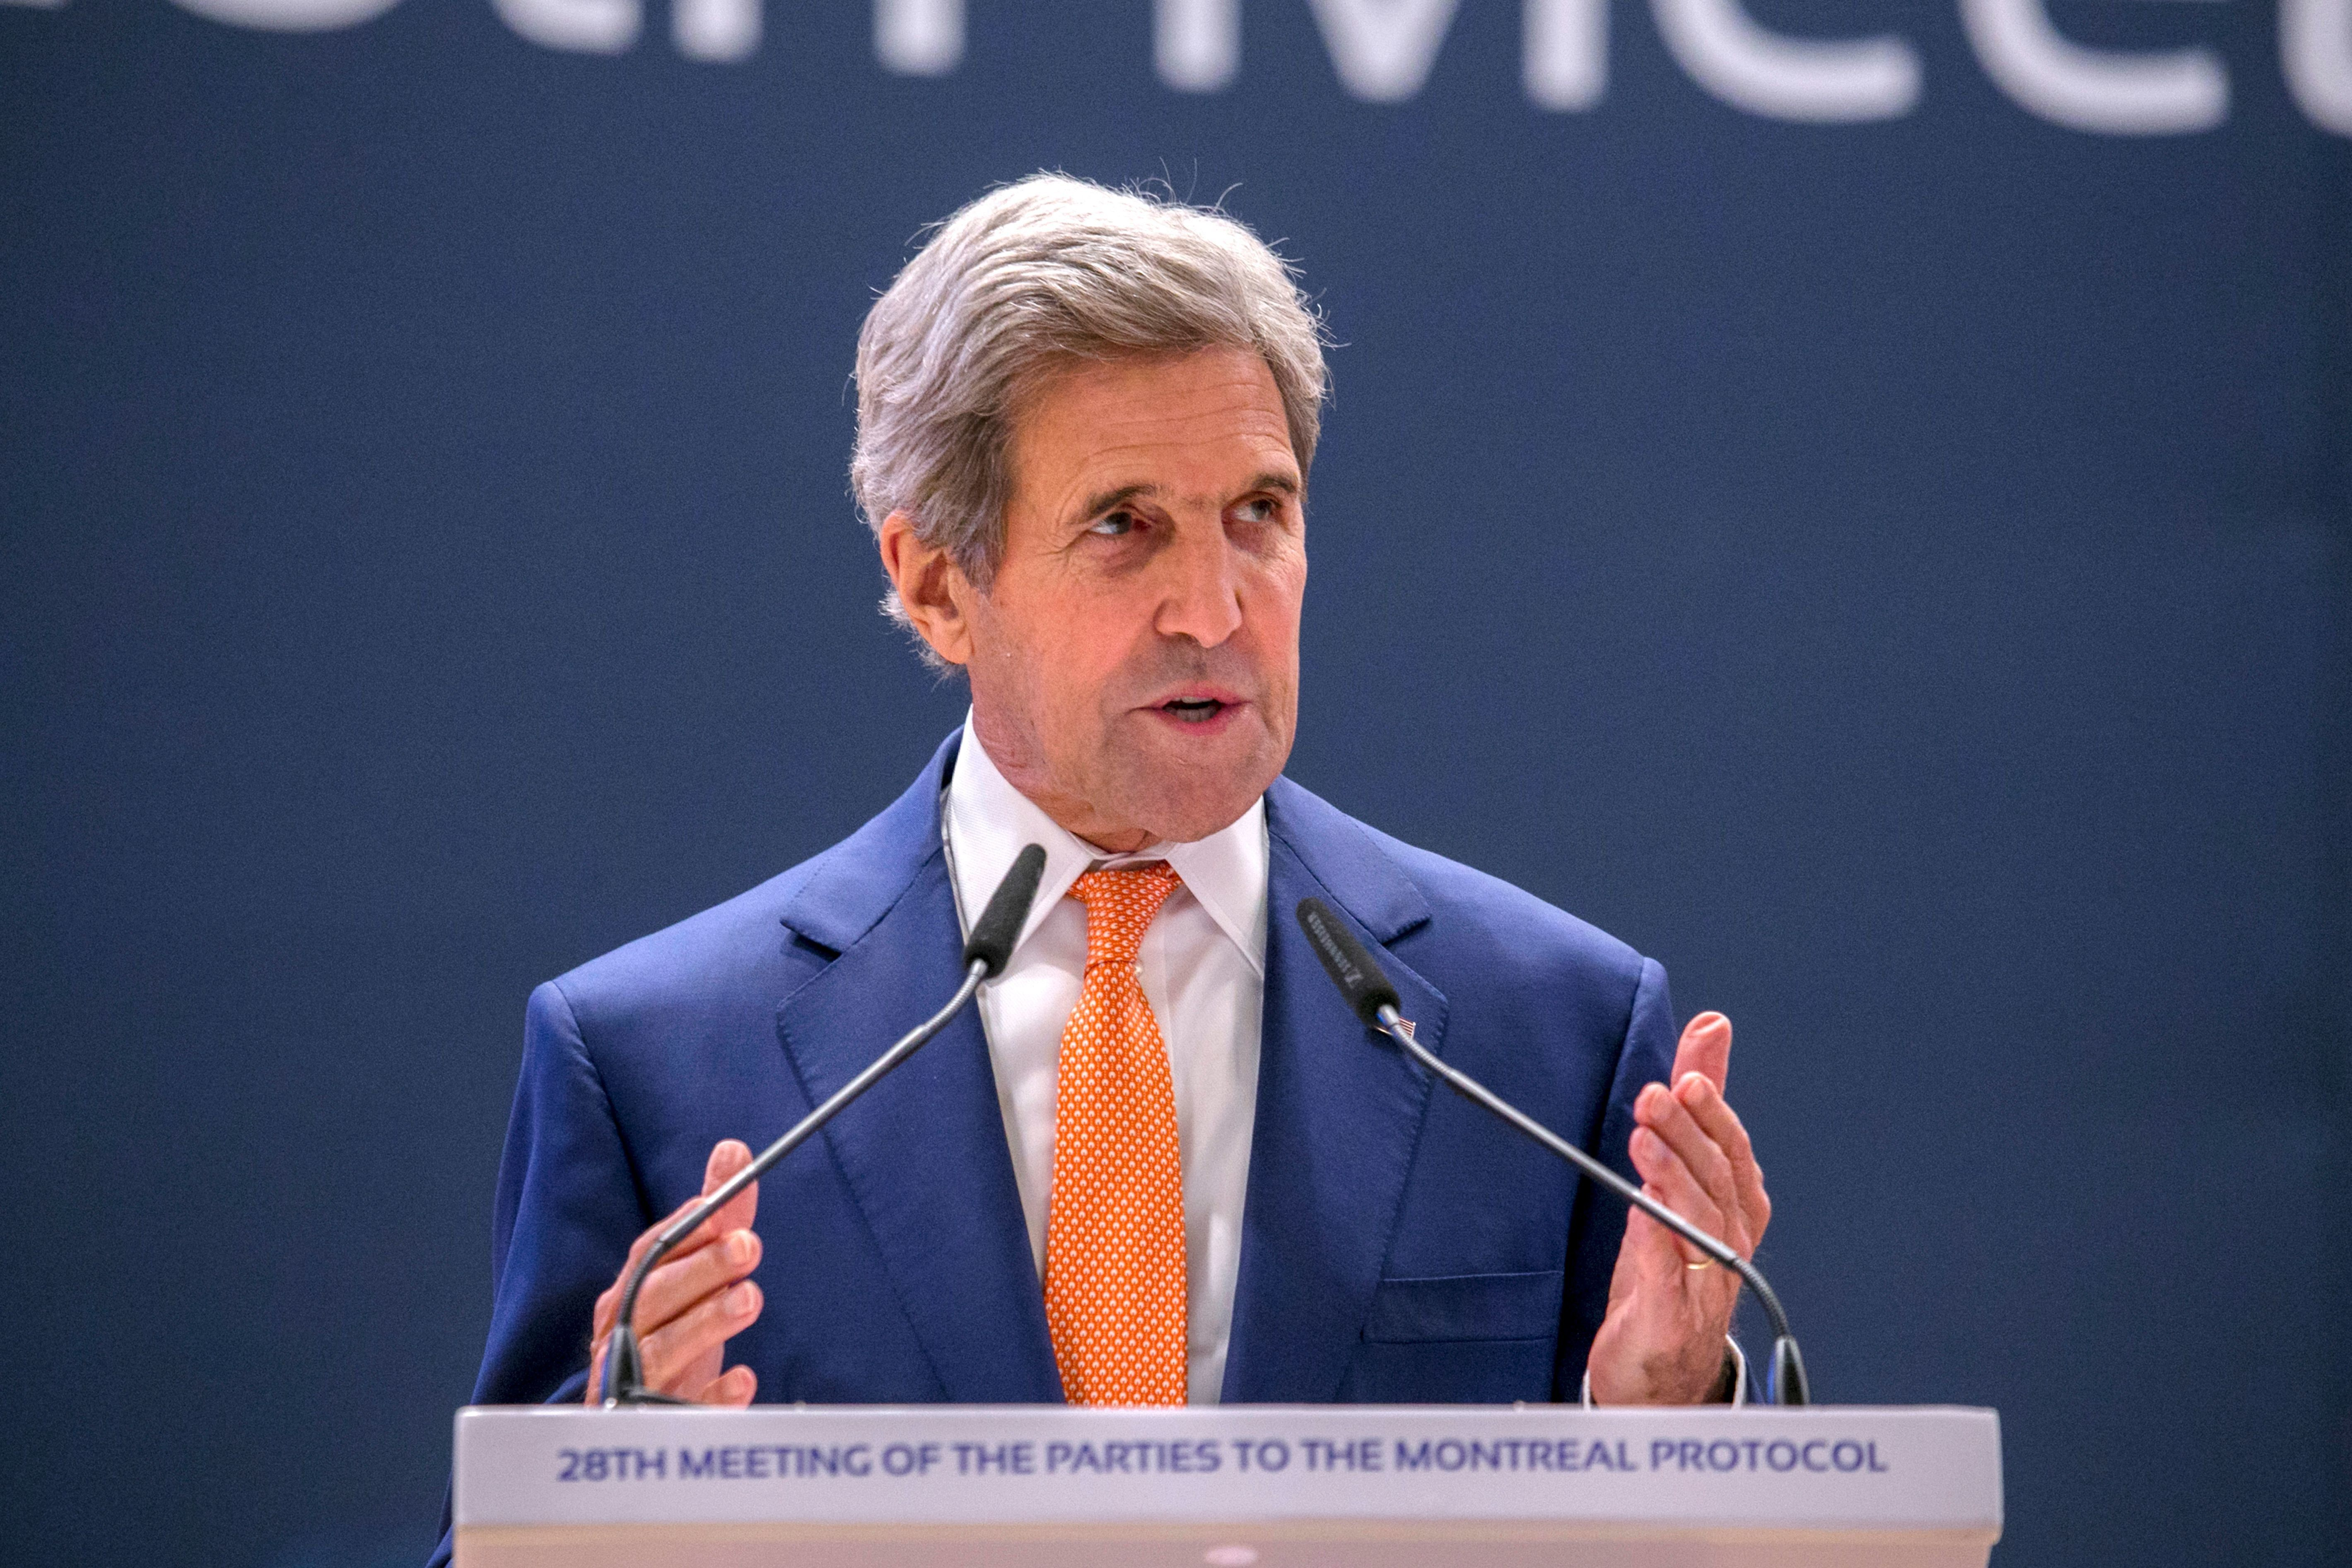 US Secretary of State John Kerry gestures as he delivers a speech during the 28th Meeting of the Parties to the Montreal Protocol in Kigali, on October 14, 2016. Hopes were high today that world envoys meeting in Rwanda will agree to phase out potent gases used in refrigerators and air conditioners that are among the biggest contributors to global warming. / AFP / CYRIL NDEGEYA        (Photo credit should read CYRIL NDEGEYA/AFP/Getty Images)